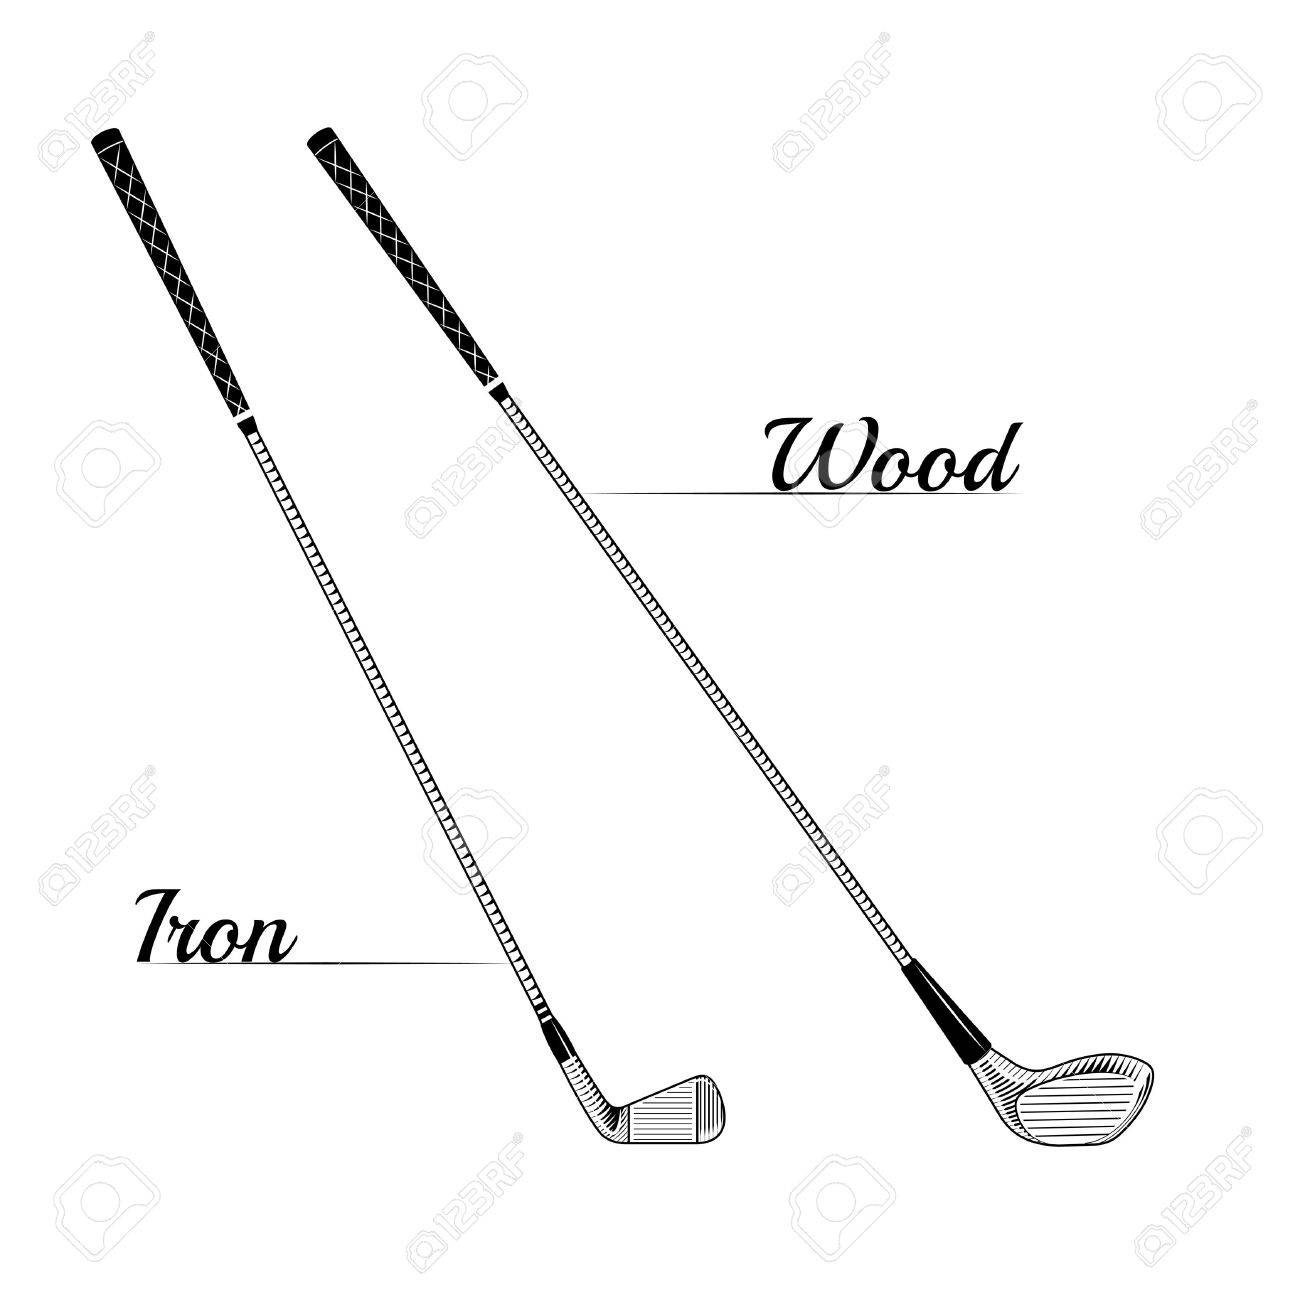 Vector Golf Posters Or Golf Prints Golf Club Logo Design Golf Royalty Free Cliparts Vectors And Stock Illustration Image 42484392